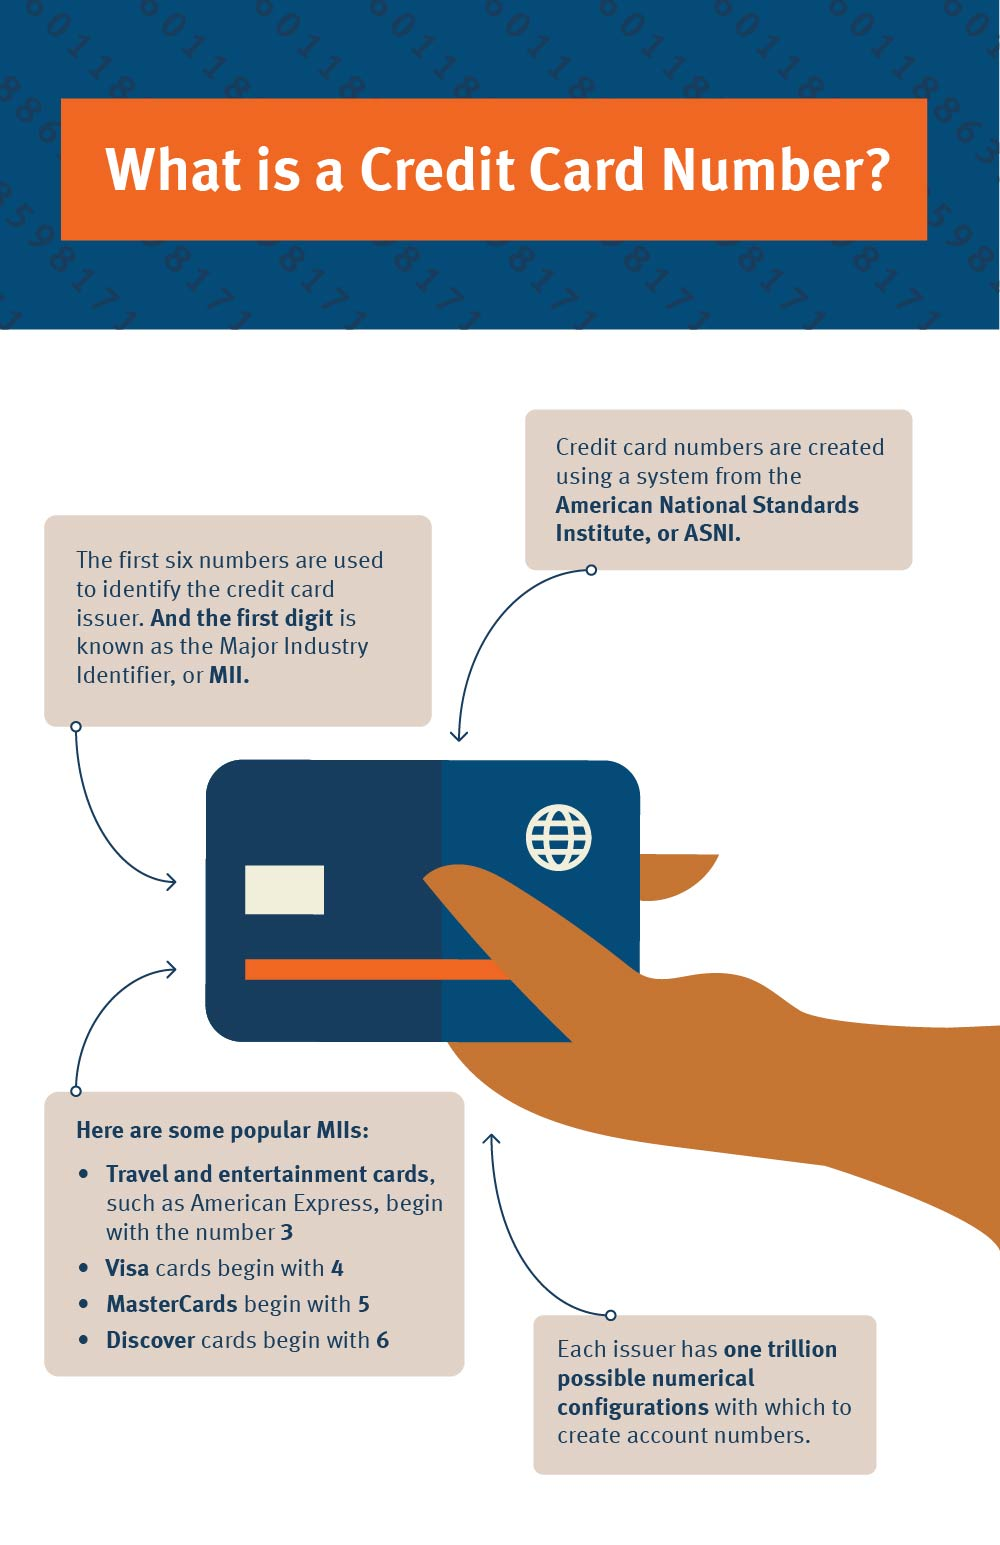 the first 6 credit card numbers